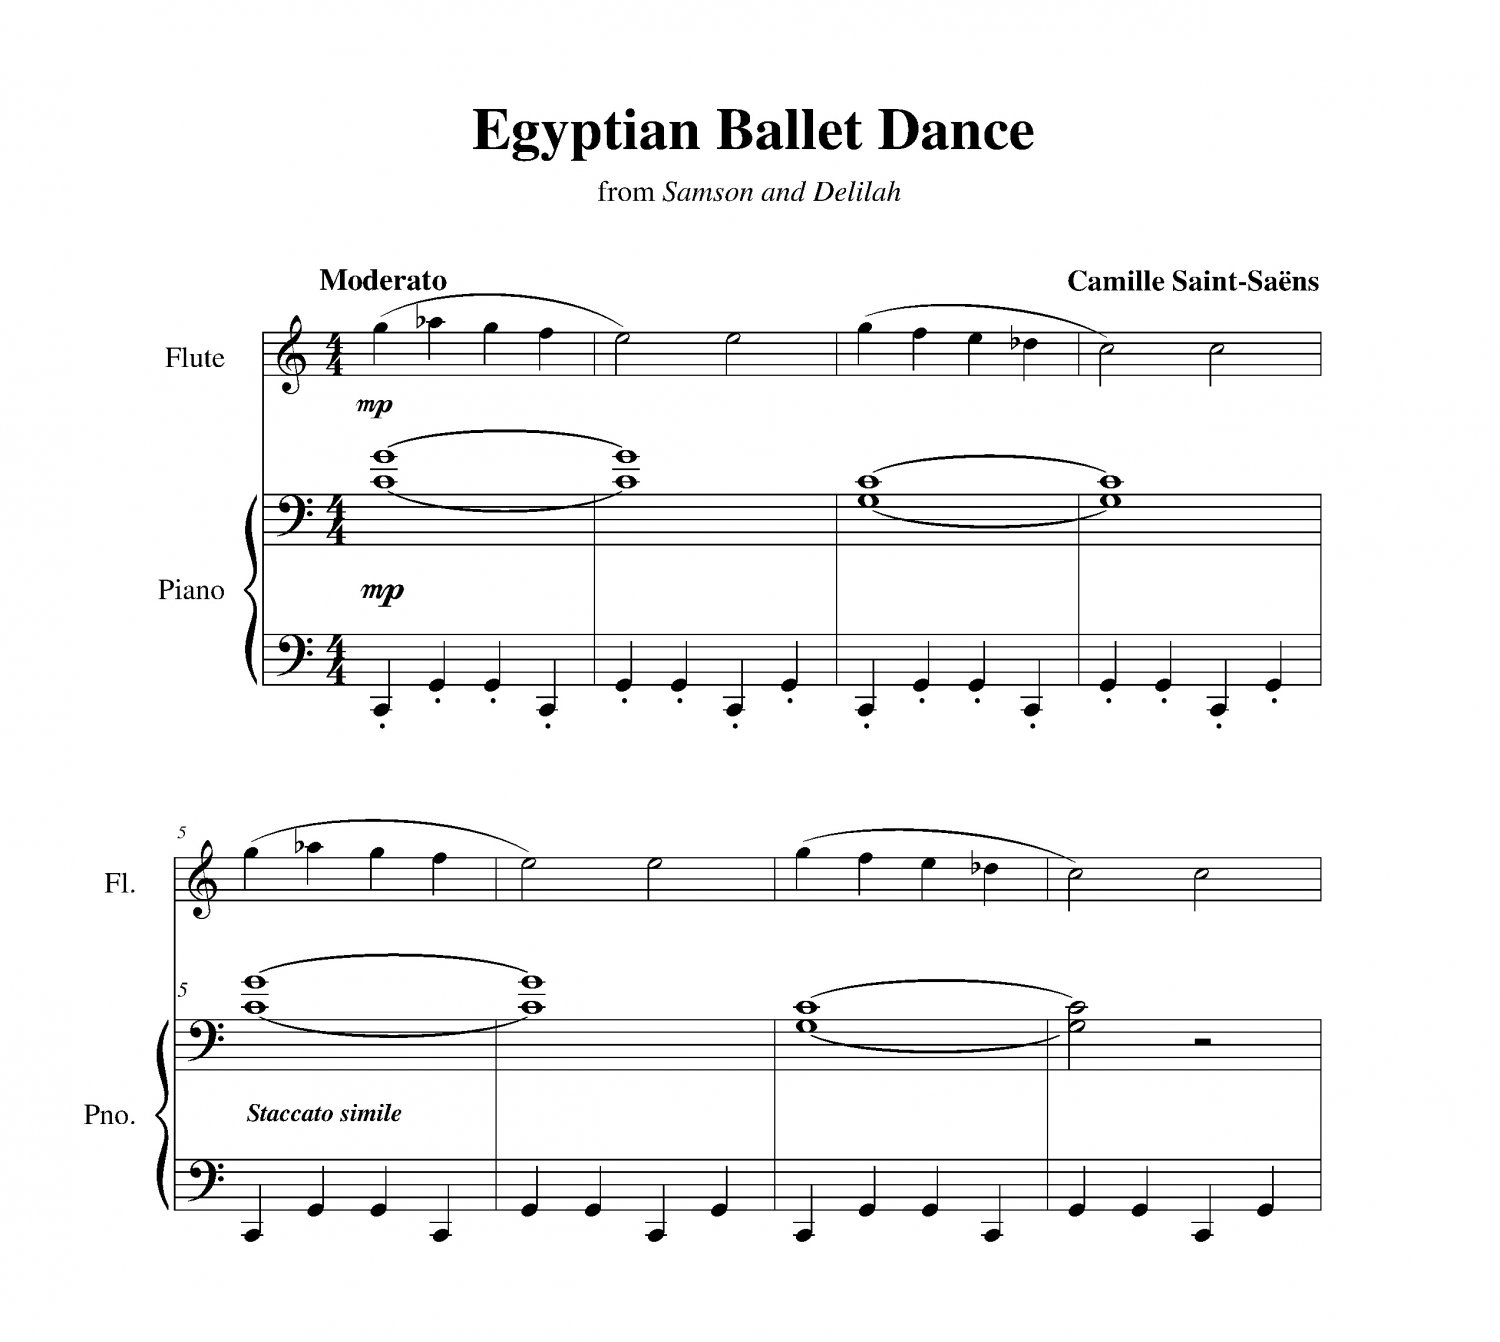 Saint-Saëns - Egyptian Ballet Dance